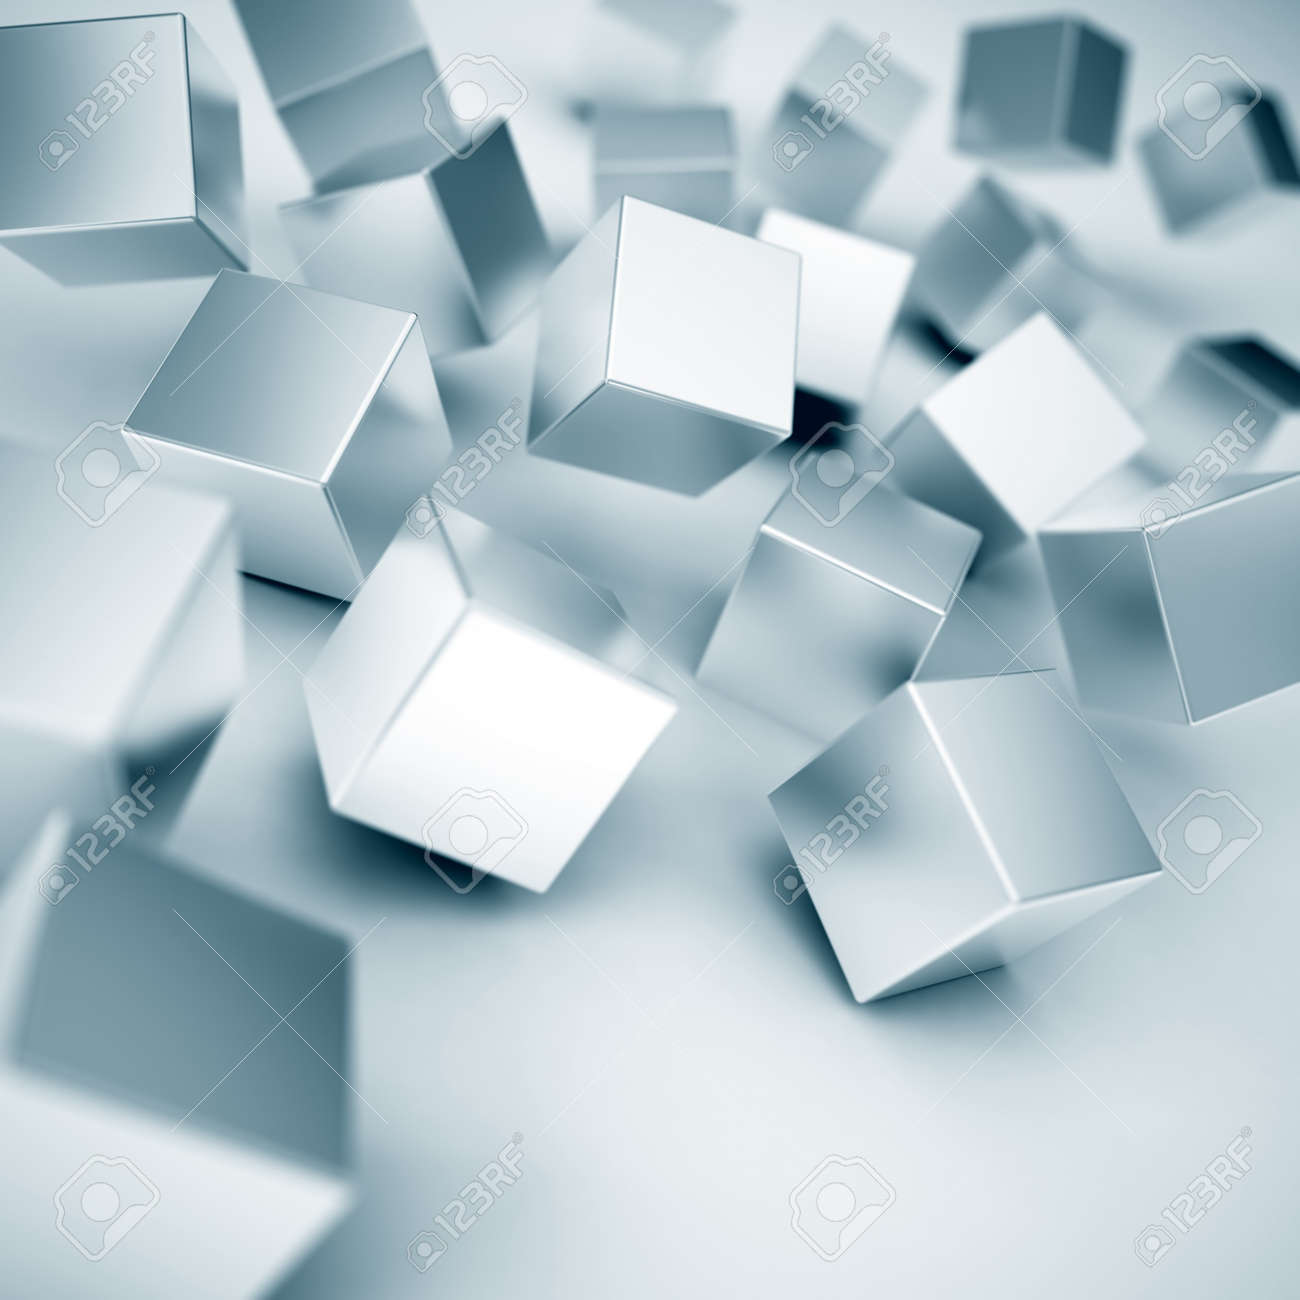 moving down and colliding metallic cubes Stock Photo - 15793051